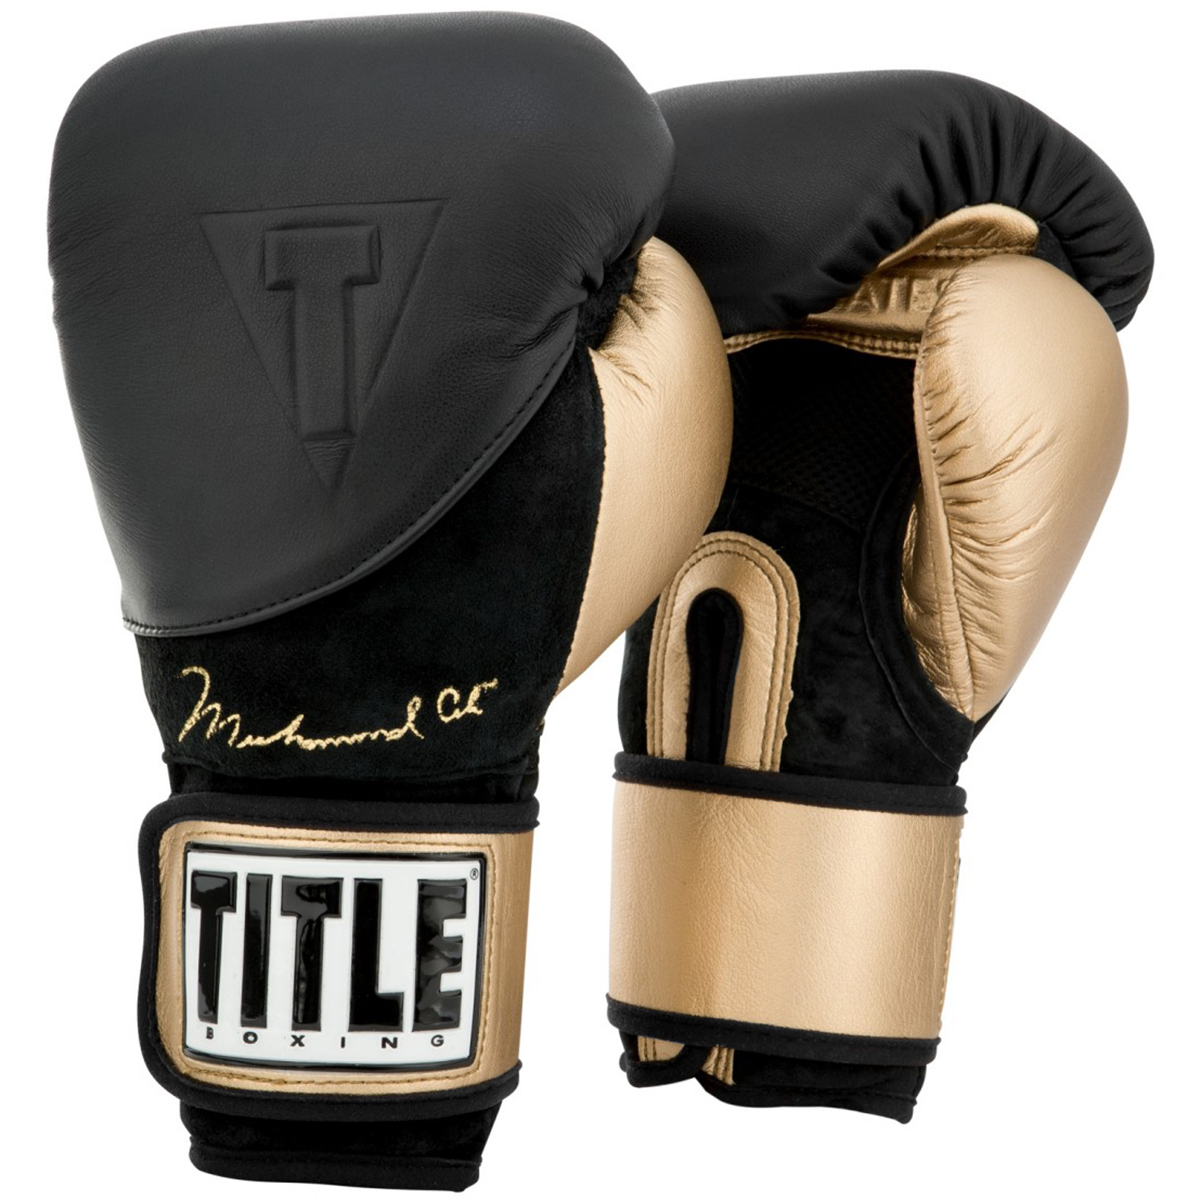 Boking Gloves: Title Boxing Ali Legacy Hook And Loop Training Boxing